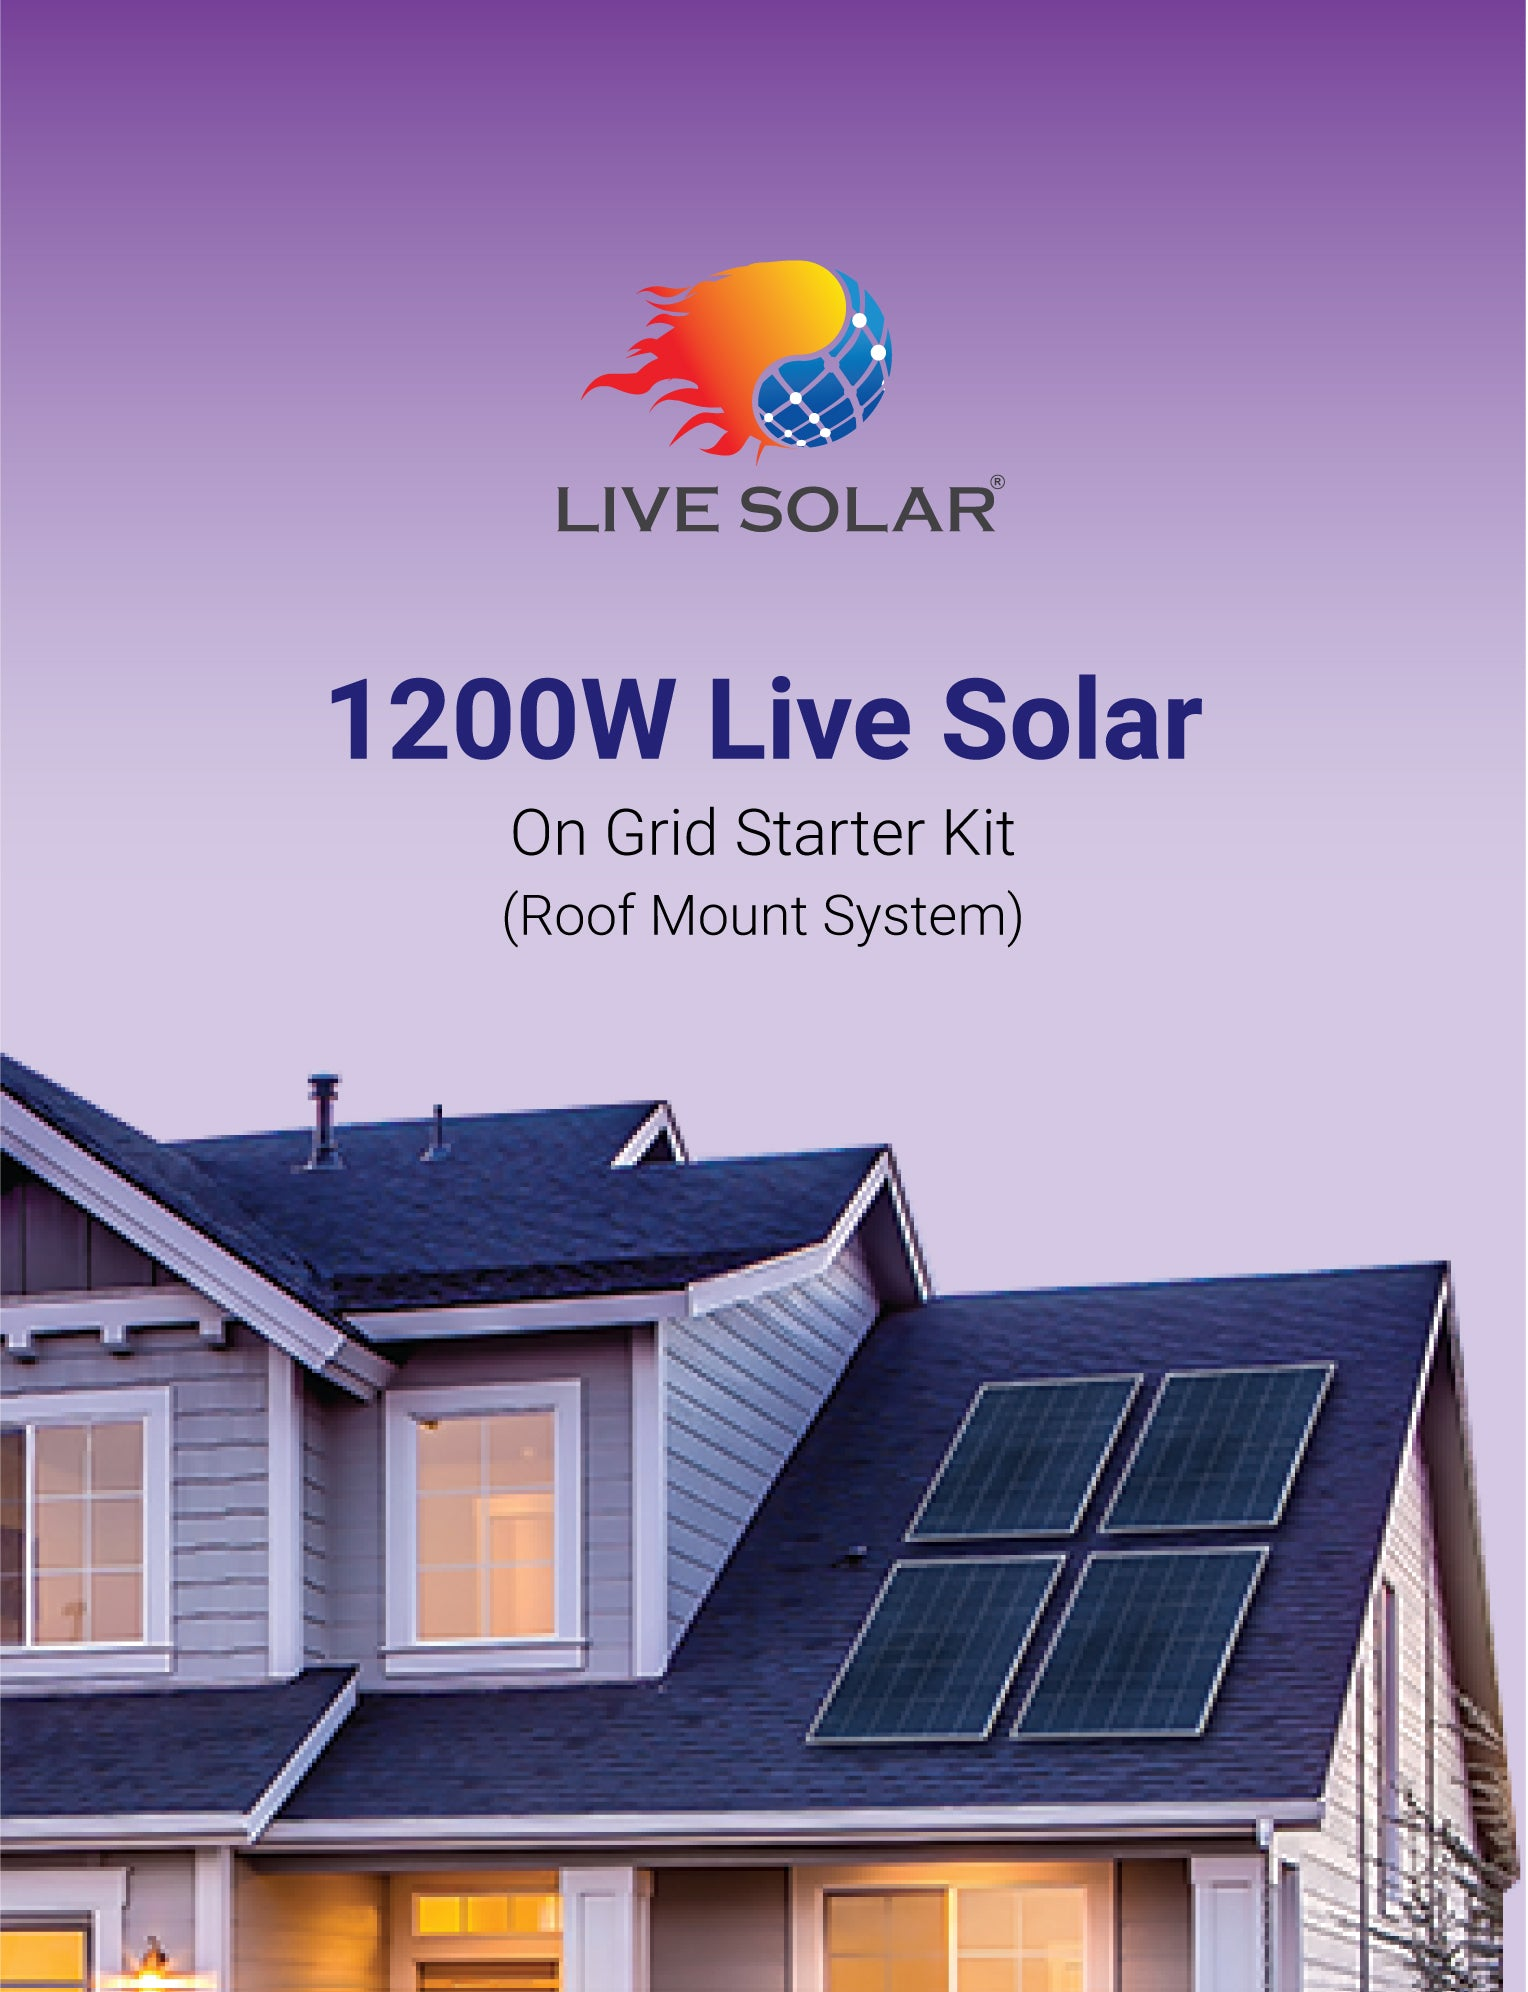 Live Solar 1200W On Grid Roof Mount Starter Kit System